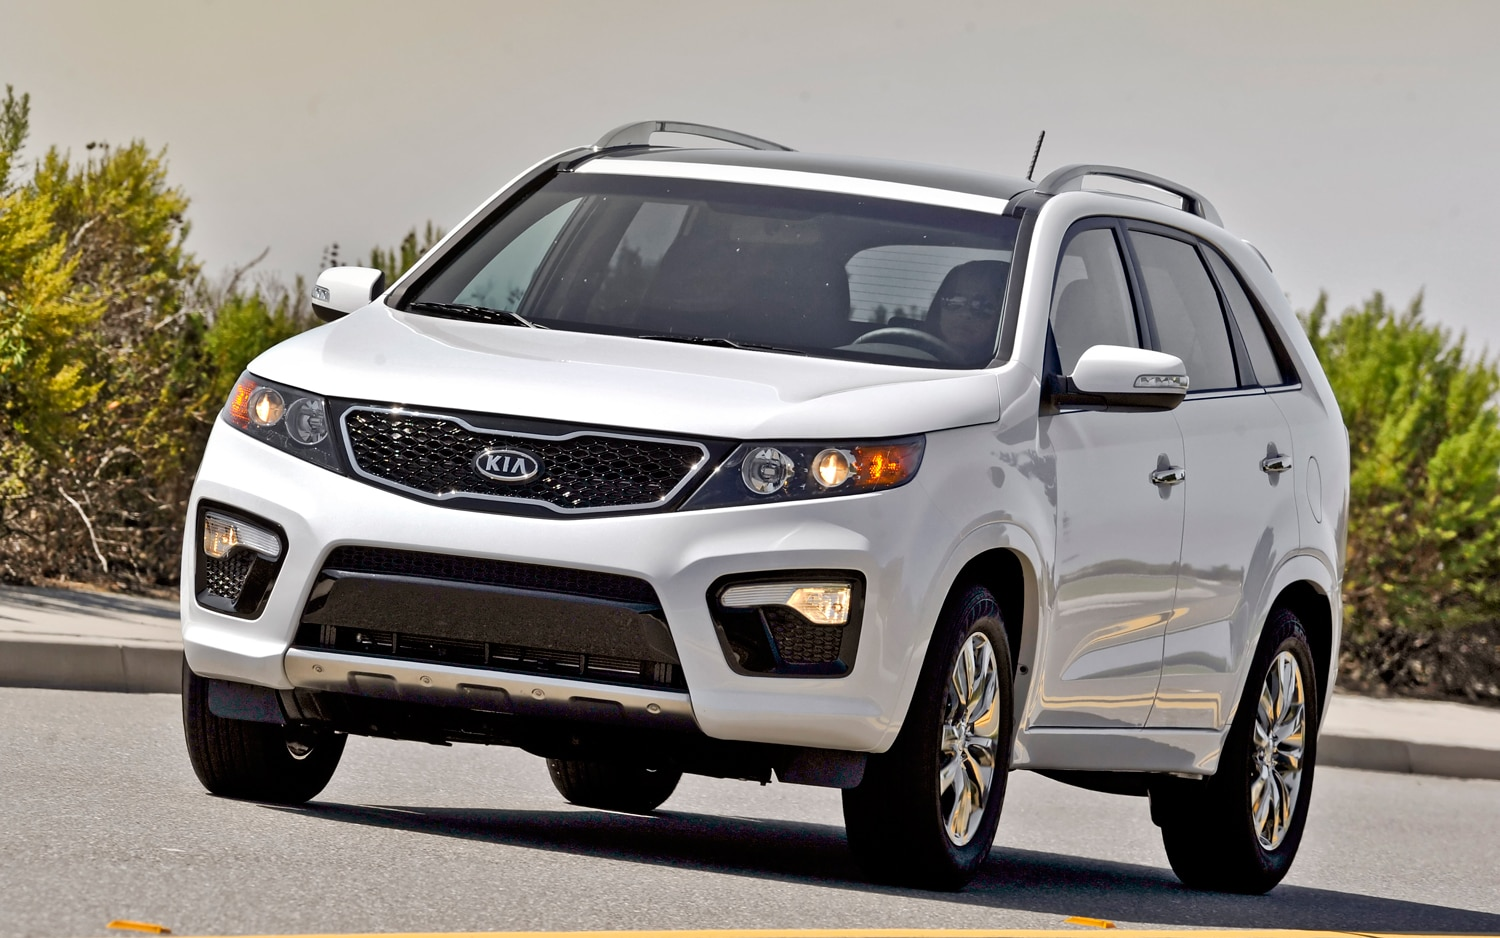 2012 Kia Sorento Front Left View 3